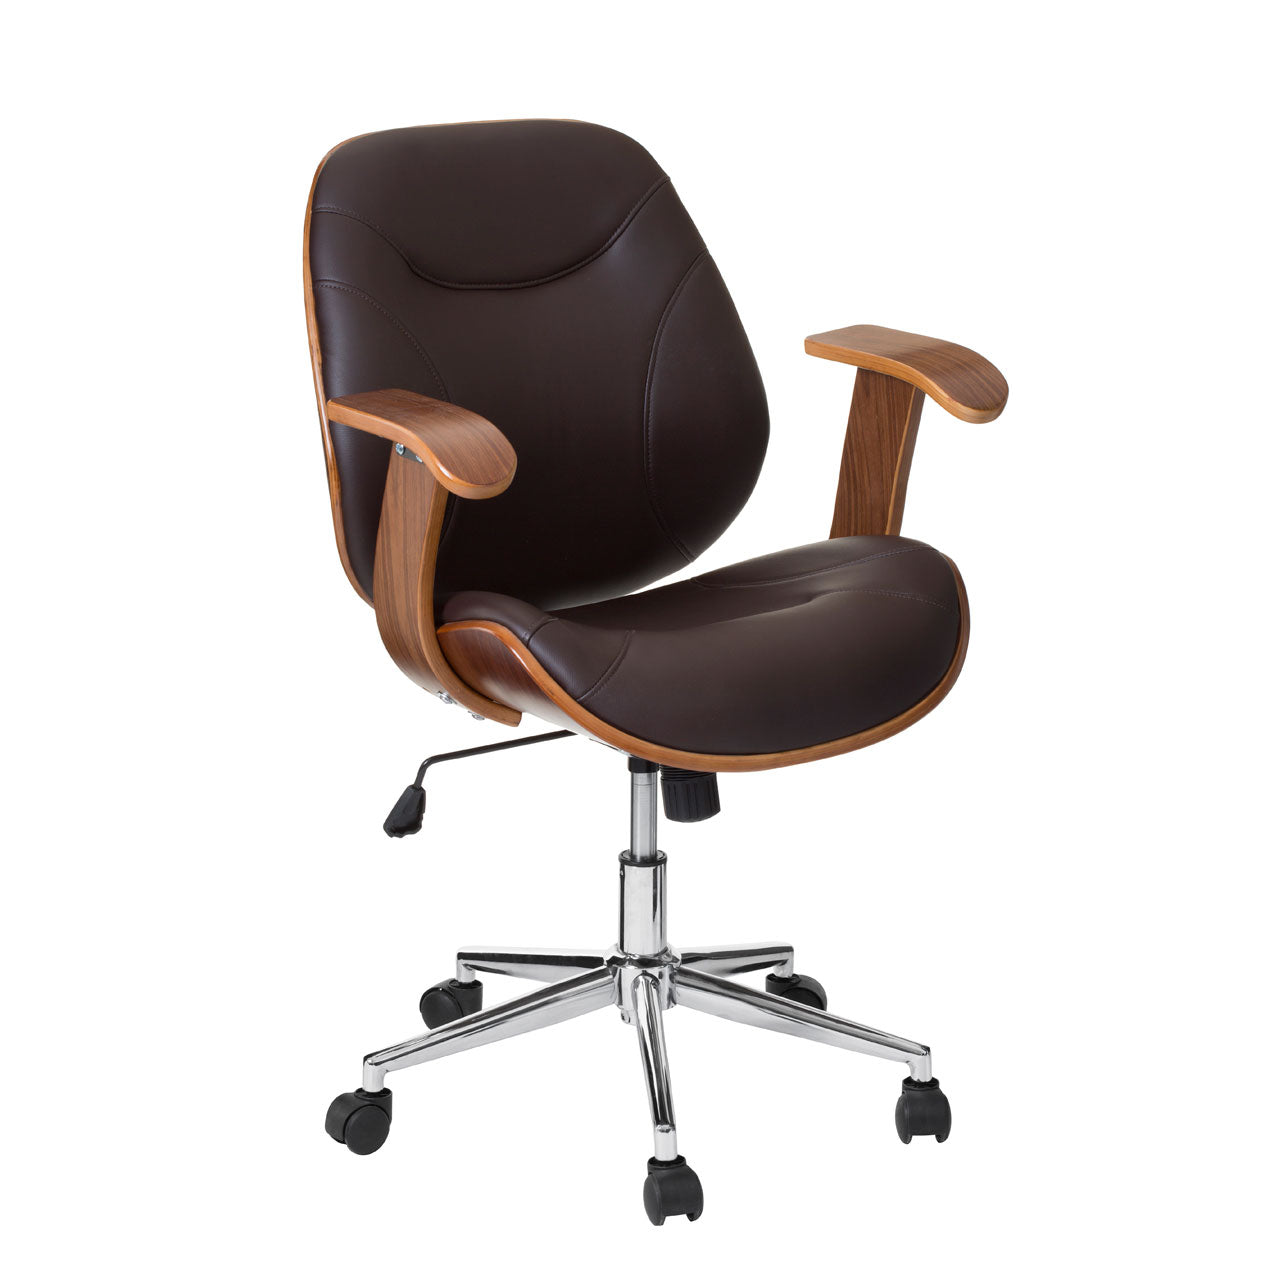 Office Chair With Arms in Brown